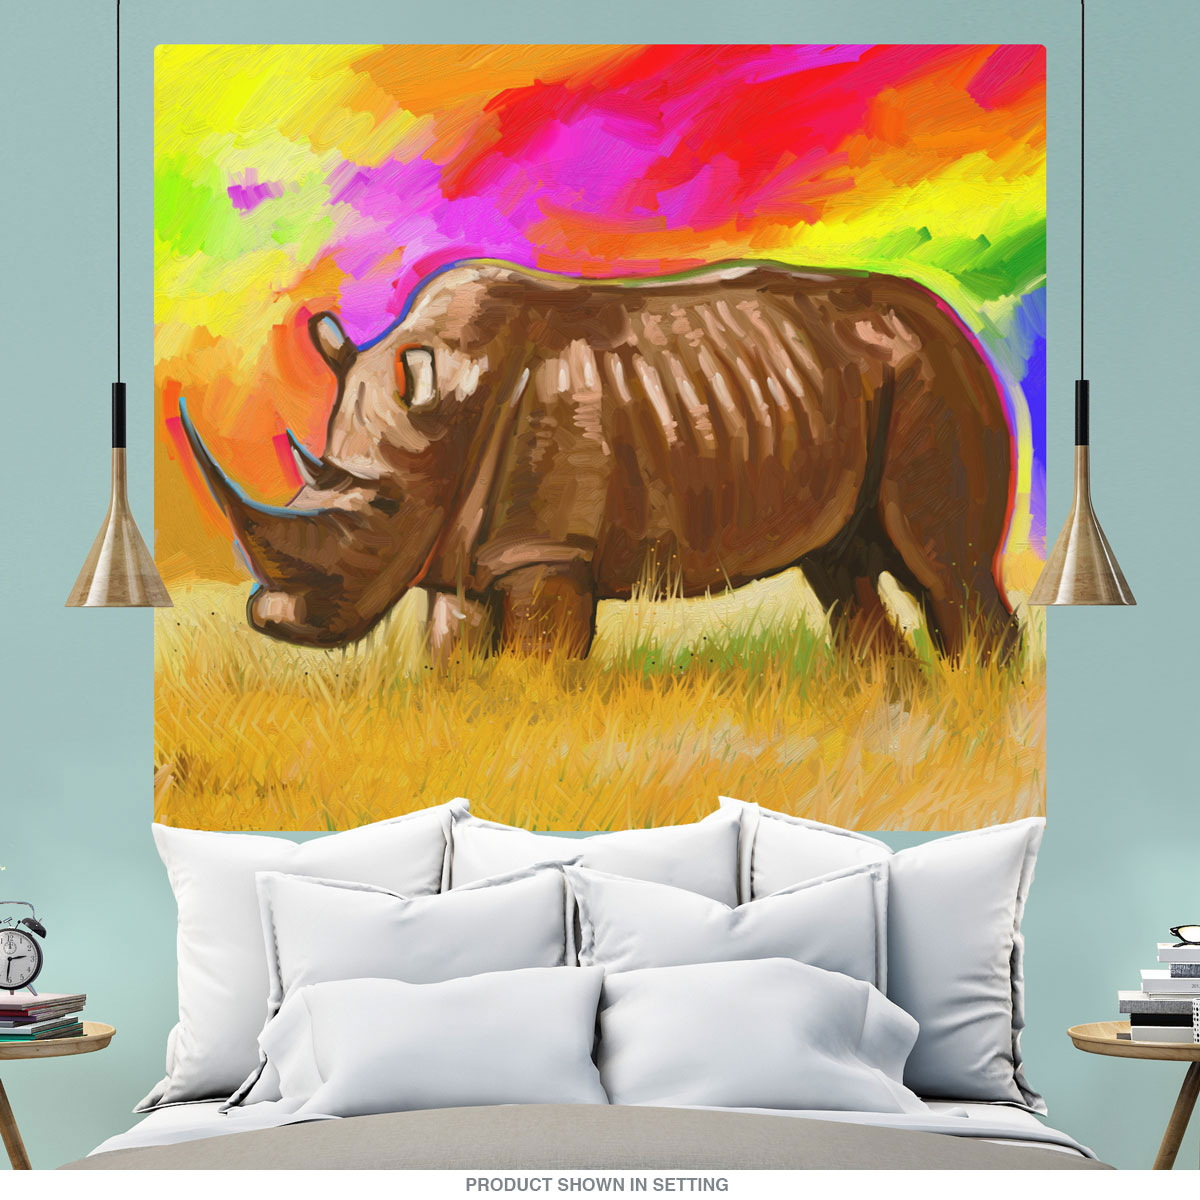 Rhino With Rainbow Sky Wall Mural Decal Pop Art at Retro Planet